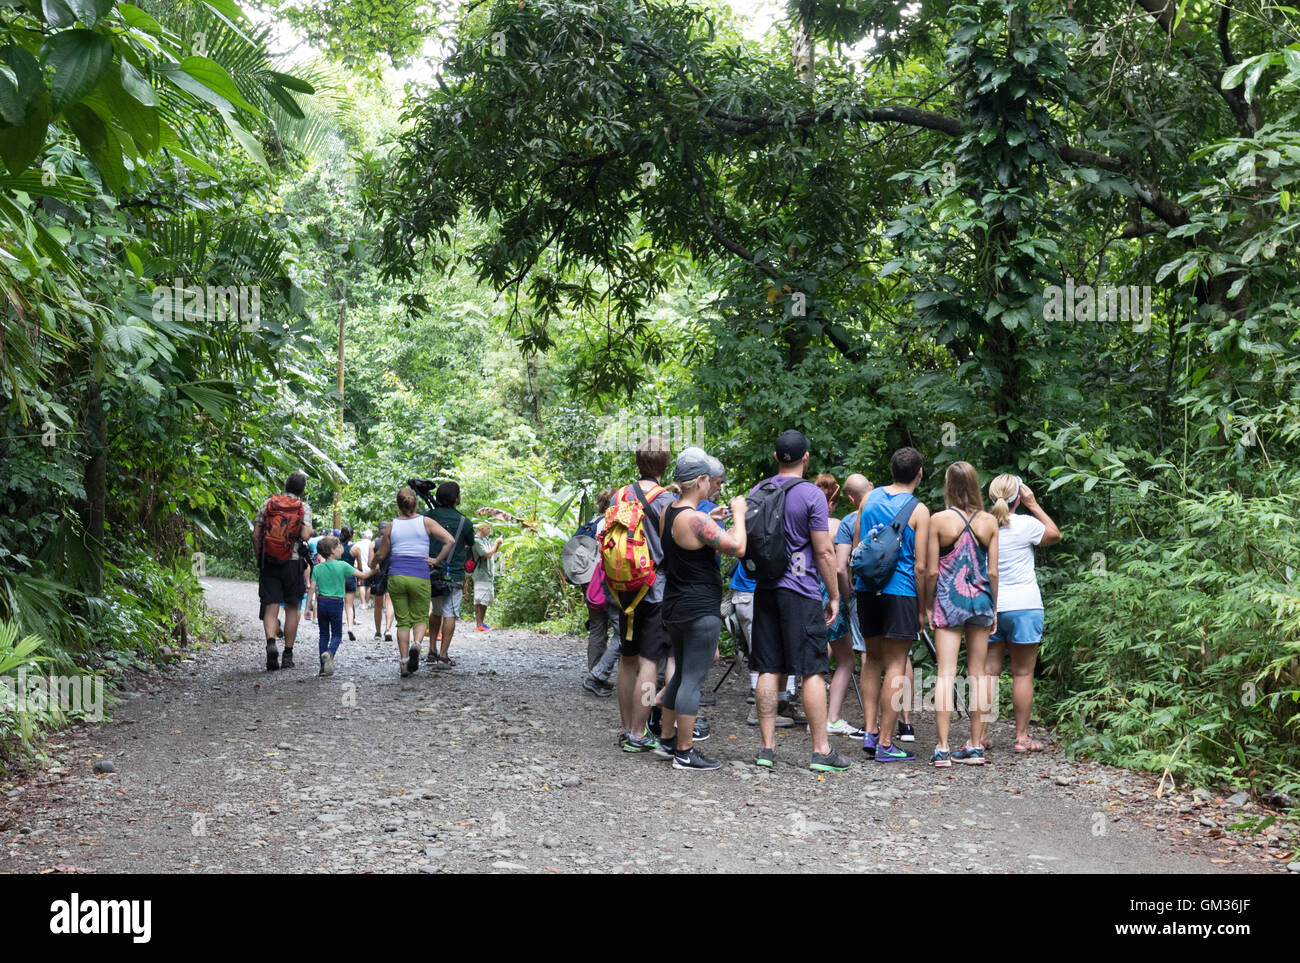 Tourist groups in Manuel Antonio national Park, Costa Rica, Central America Stock Photo